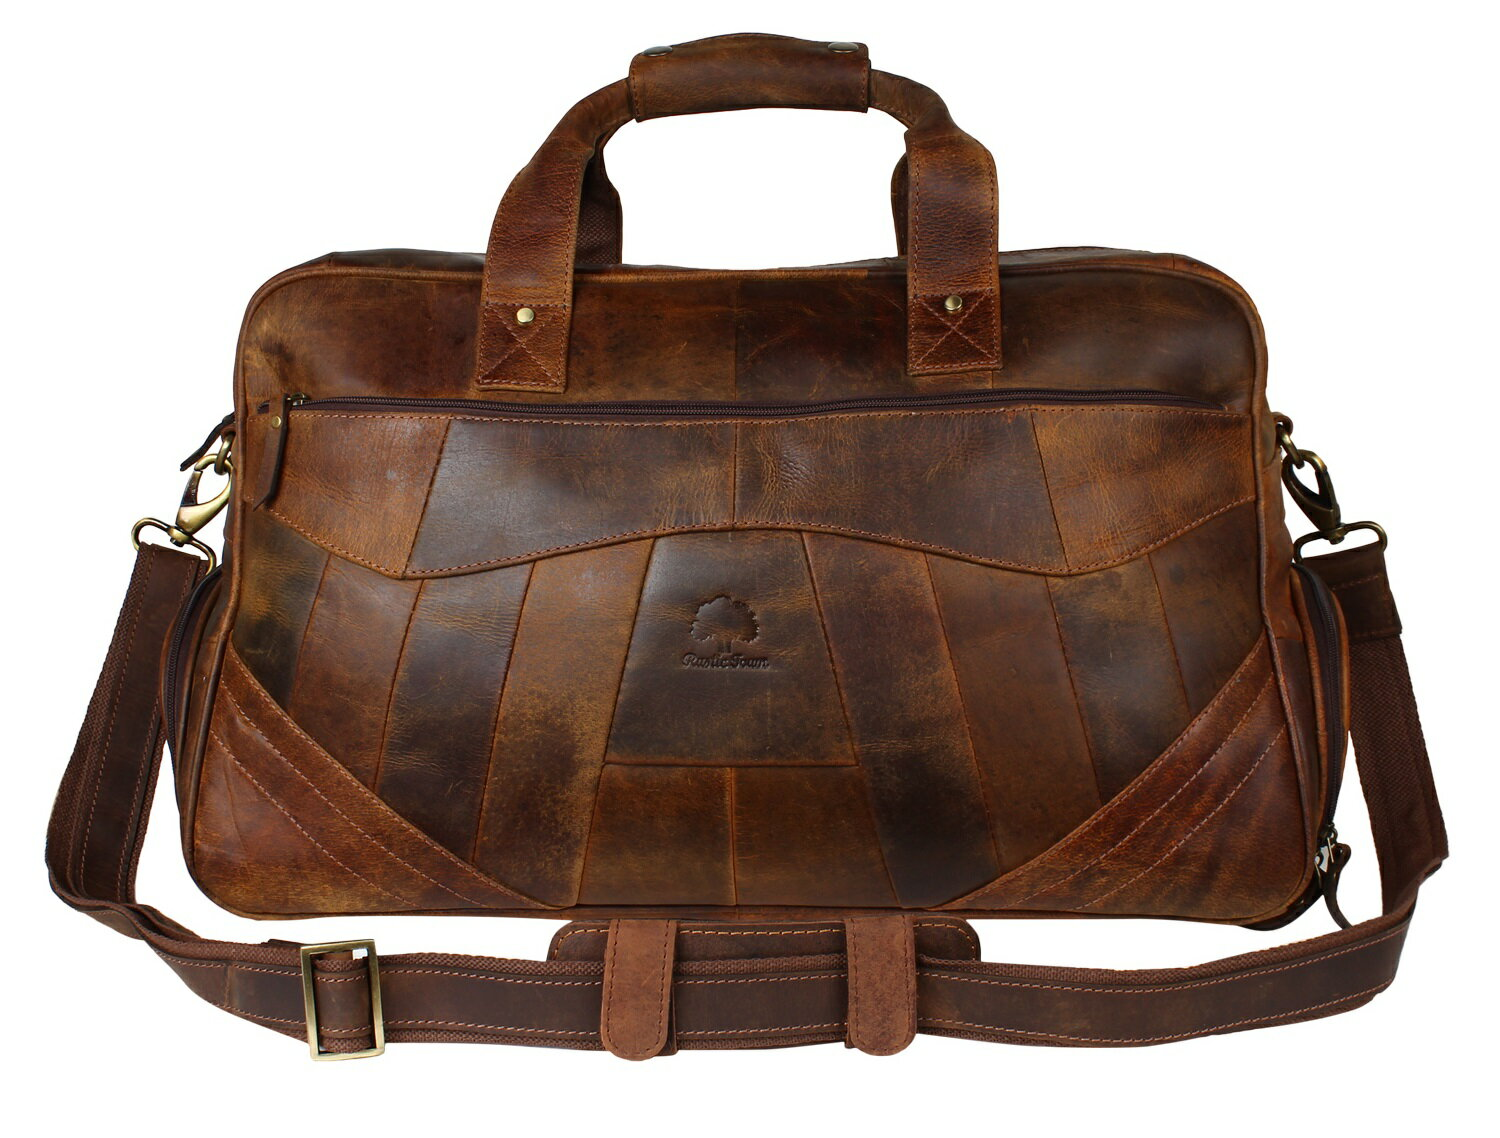 Rustic Town Leather Travel Duffel Bag Overnight Weekend Luggage Carry On Underseat Airplanes 0